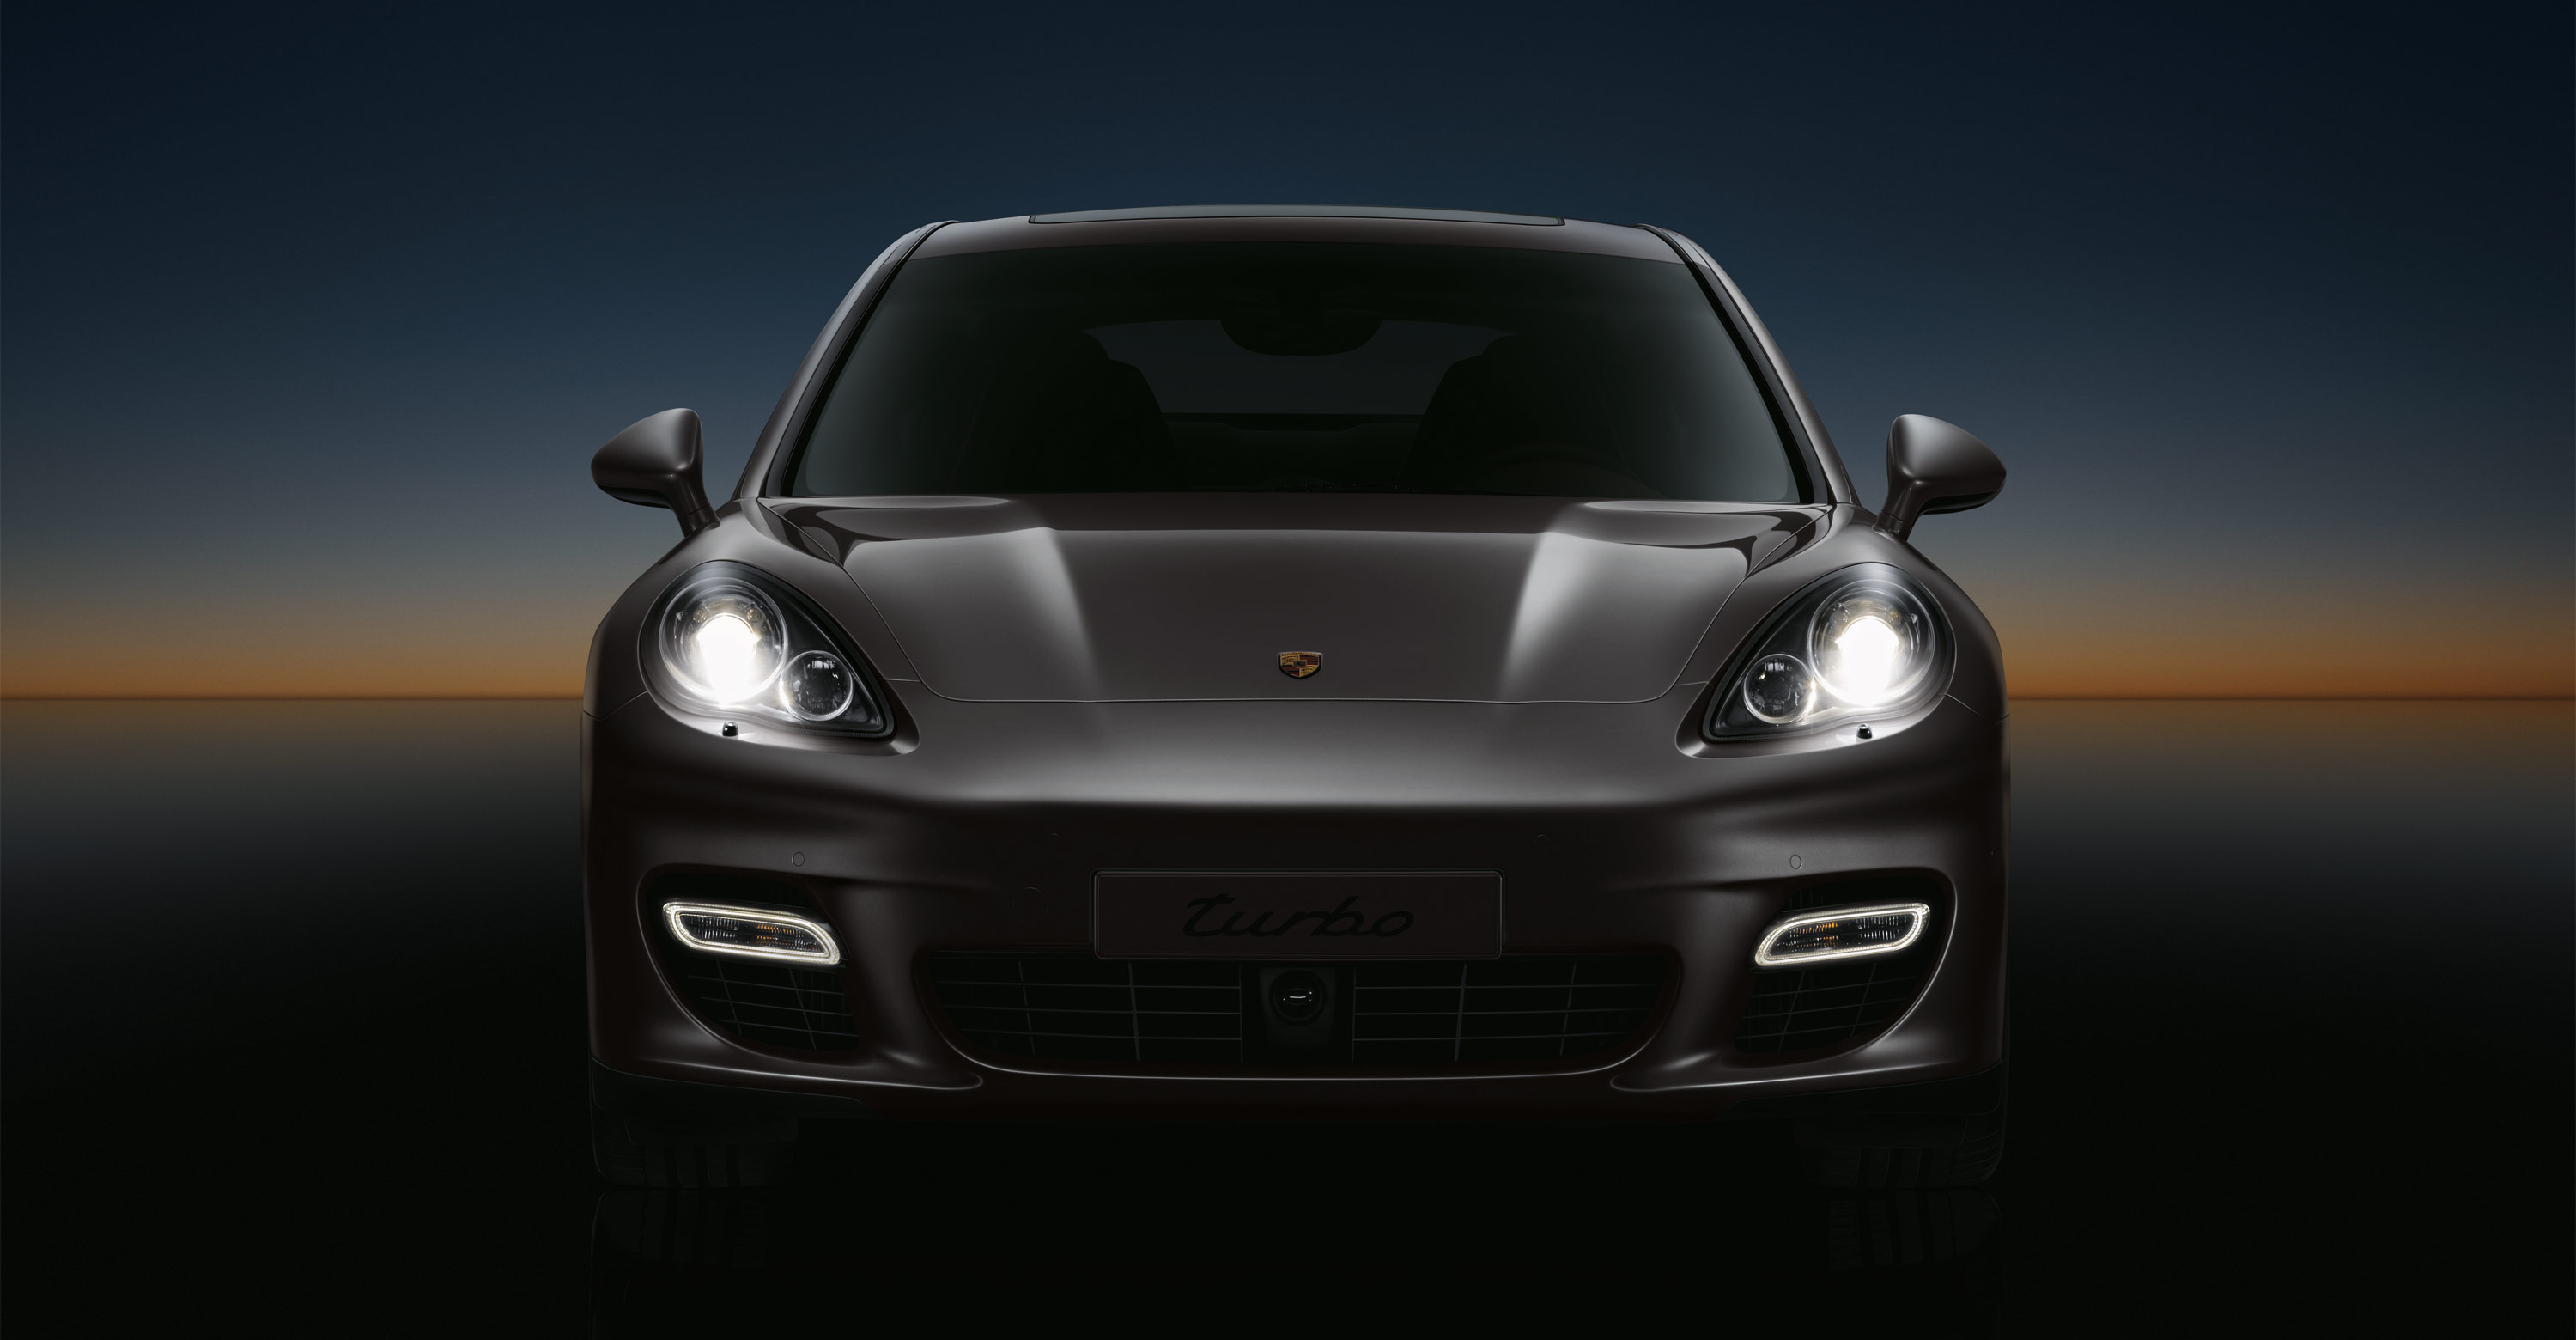 2011 Panamera Turbo Wallpapers